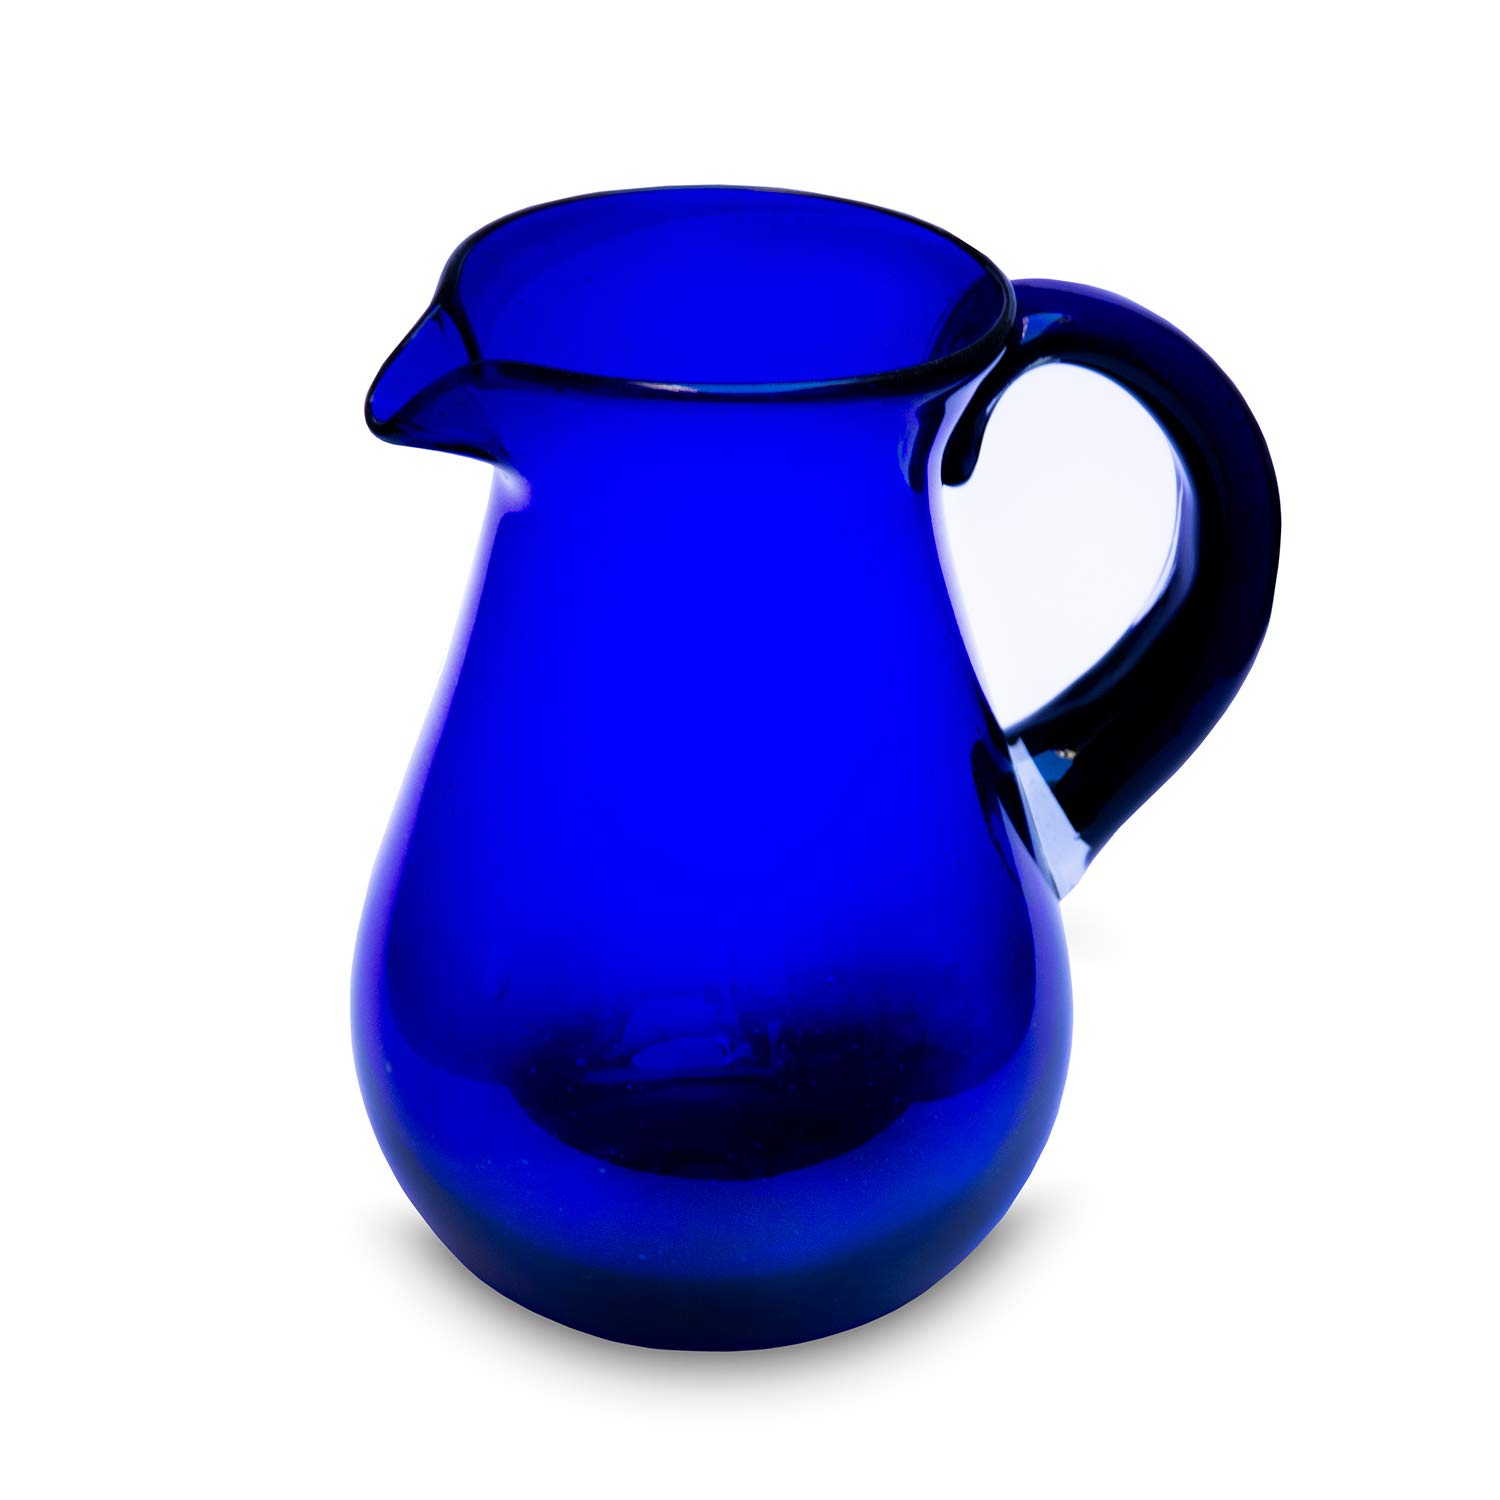 carafe pear blue water carafe 21.5 cm mouth-blown glass made from Mexico jug jug glass recycling Mitienda glass manufacturer handmade